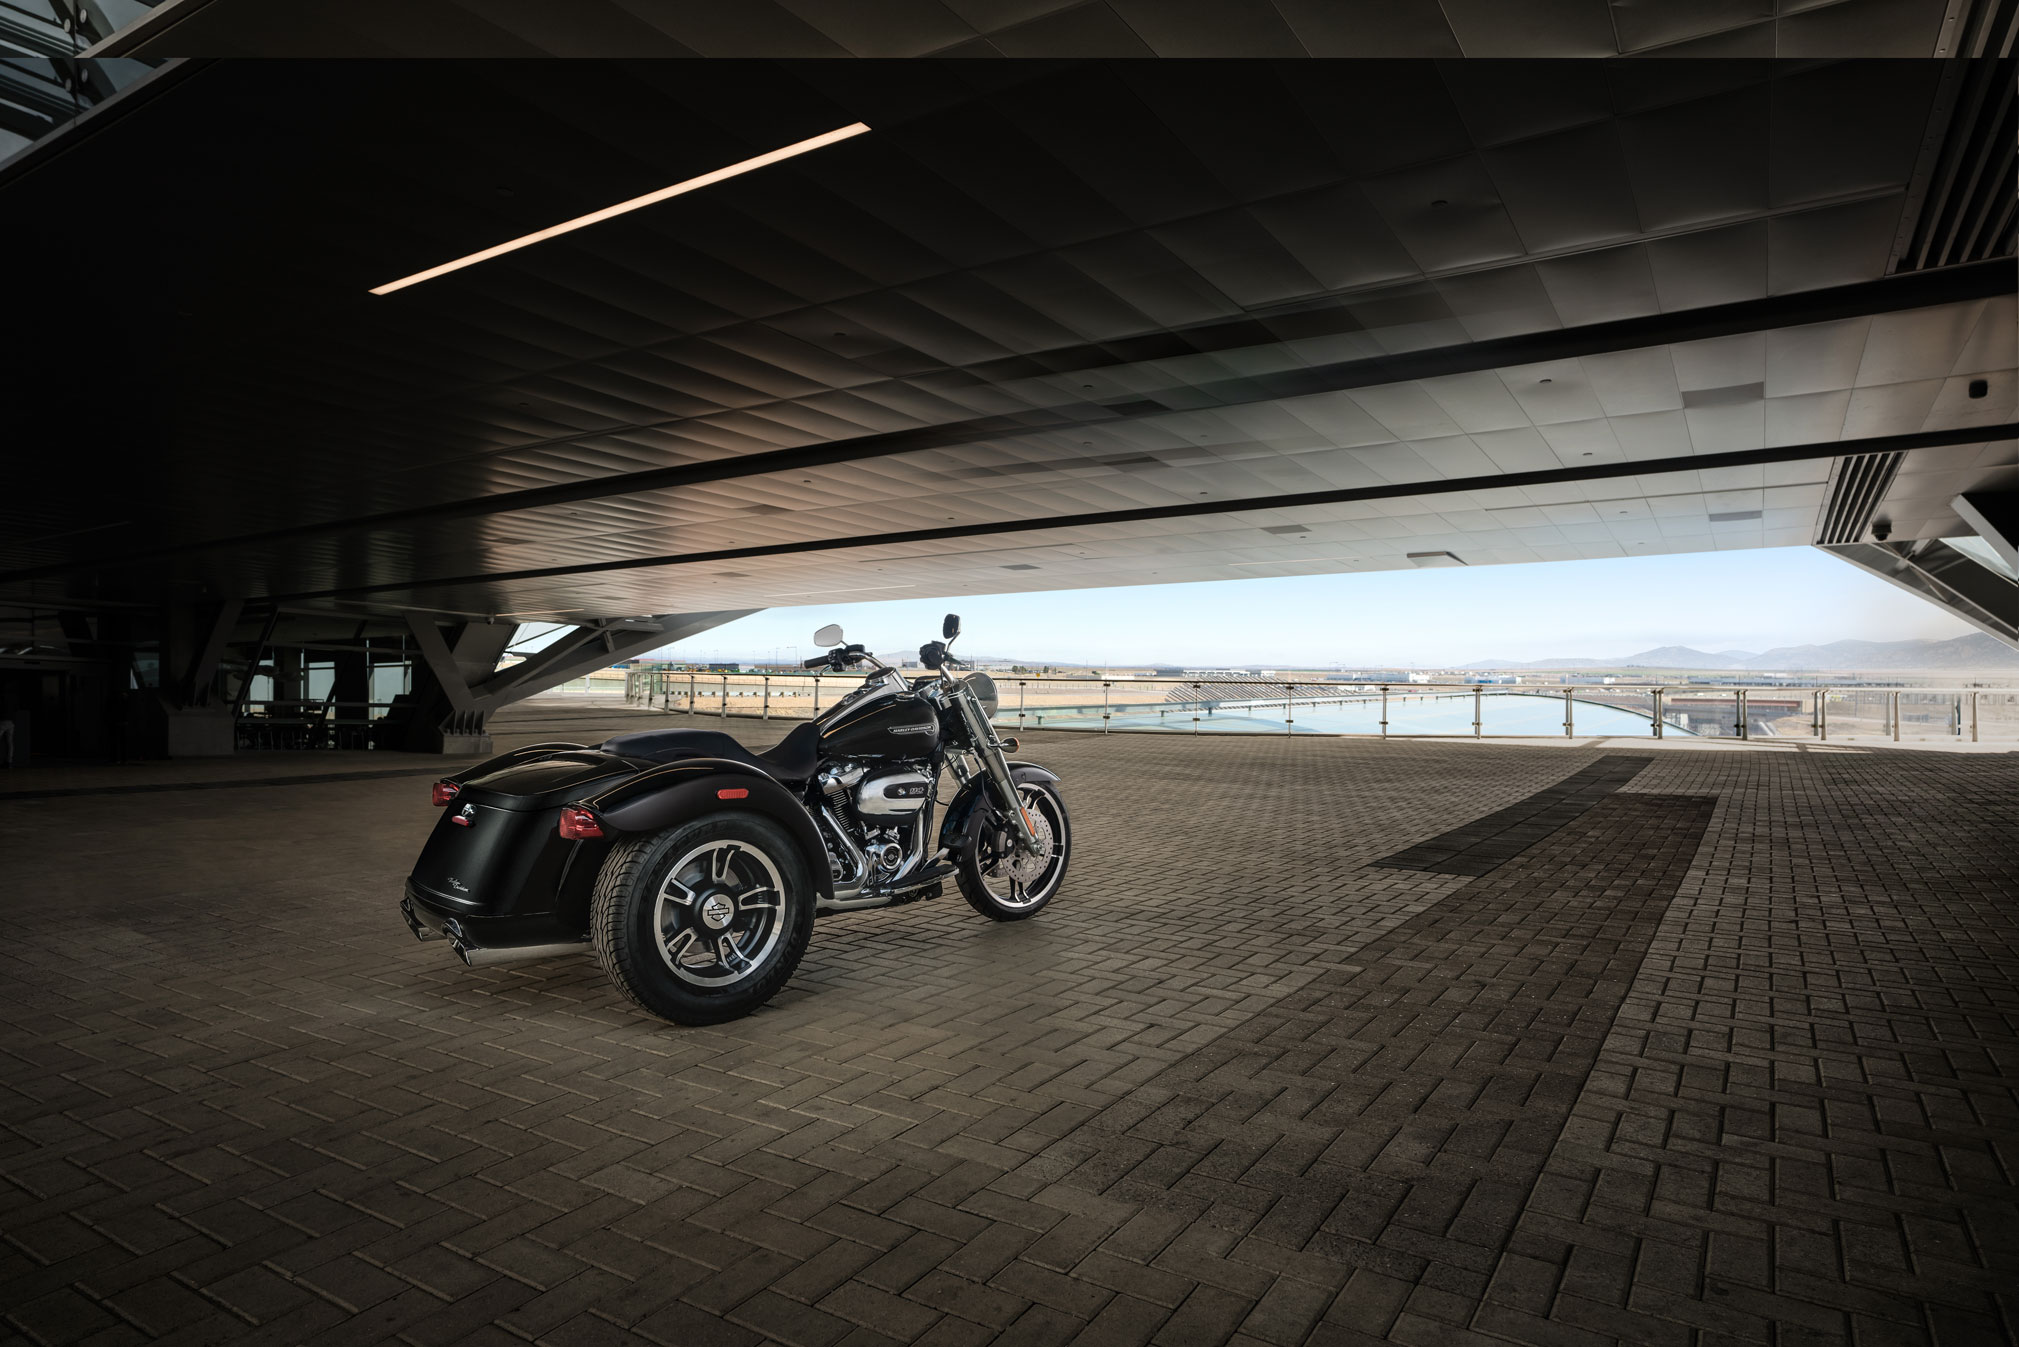 2019 Harley-Davidson Freewheeler Guide • Total Motorcycle